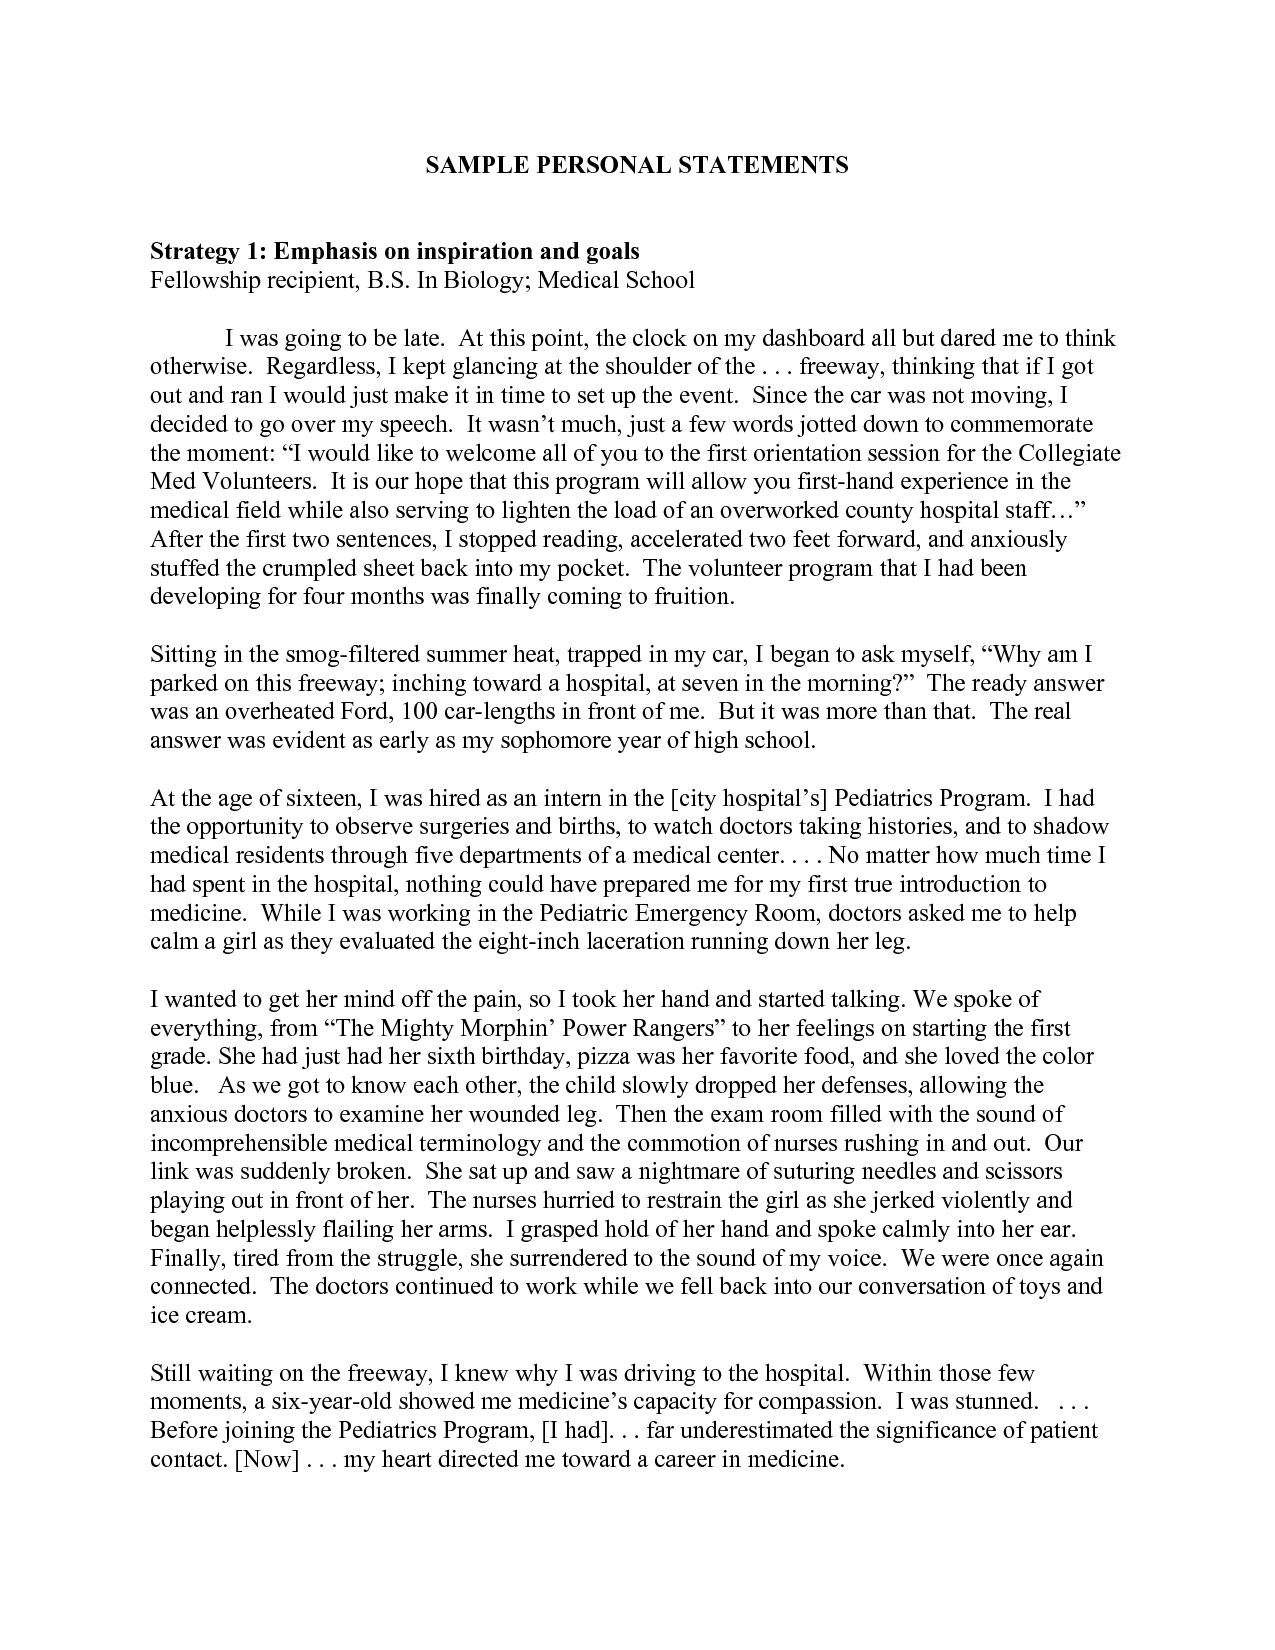 Law School Personal Statement Examples  Personal statement